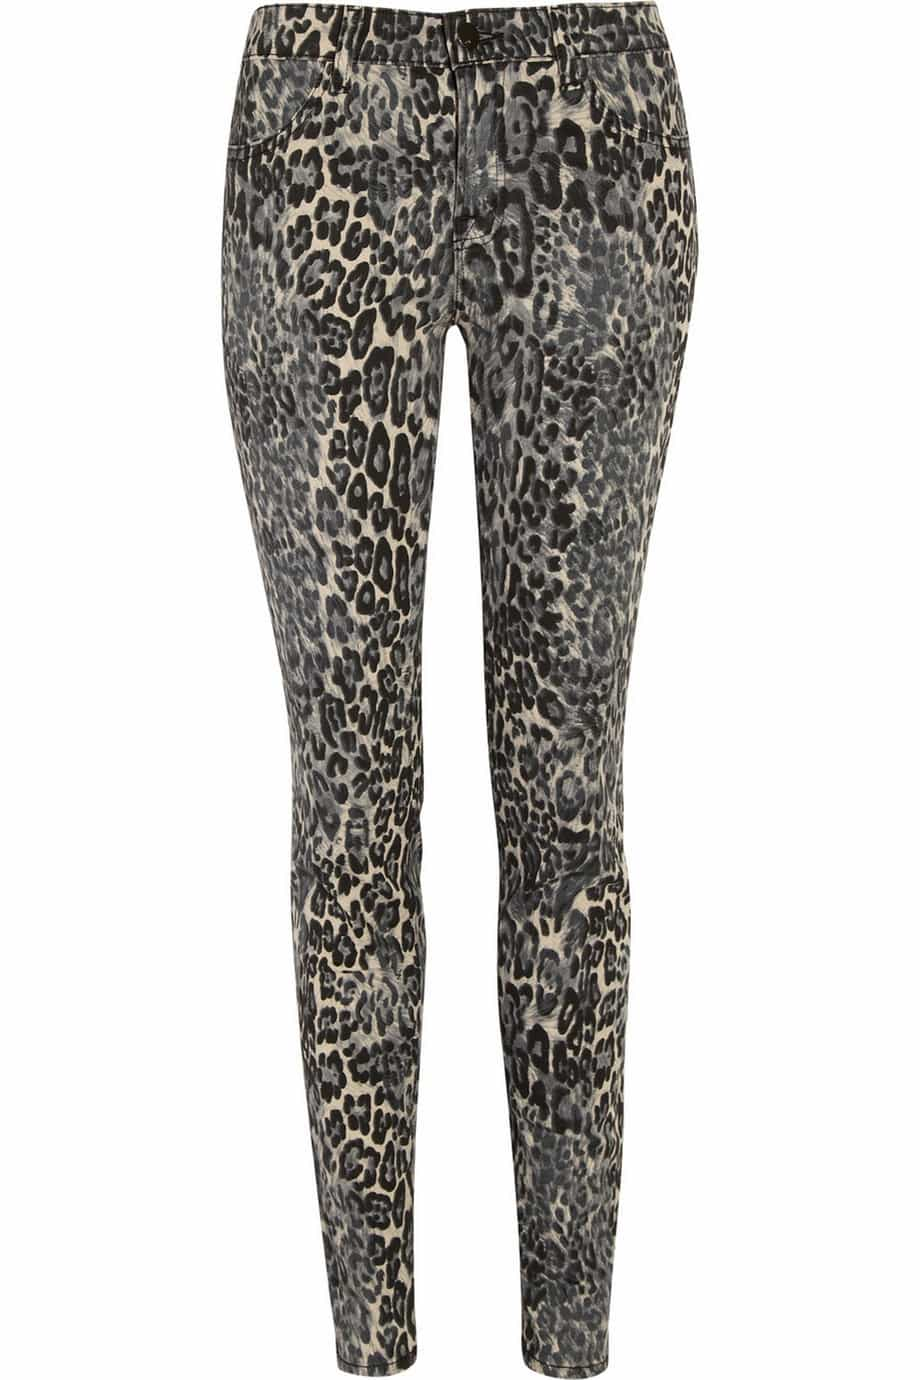 J Brand Denim Leopard-print mid-rise skinny jeans Original price £250 Now £112.50 55% off